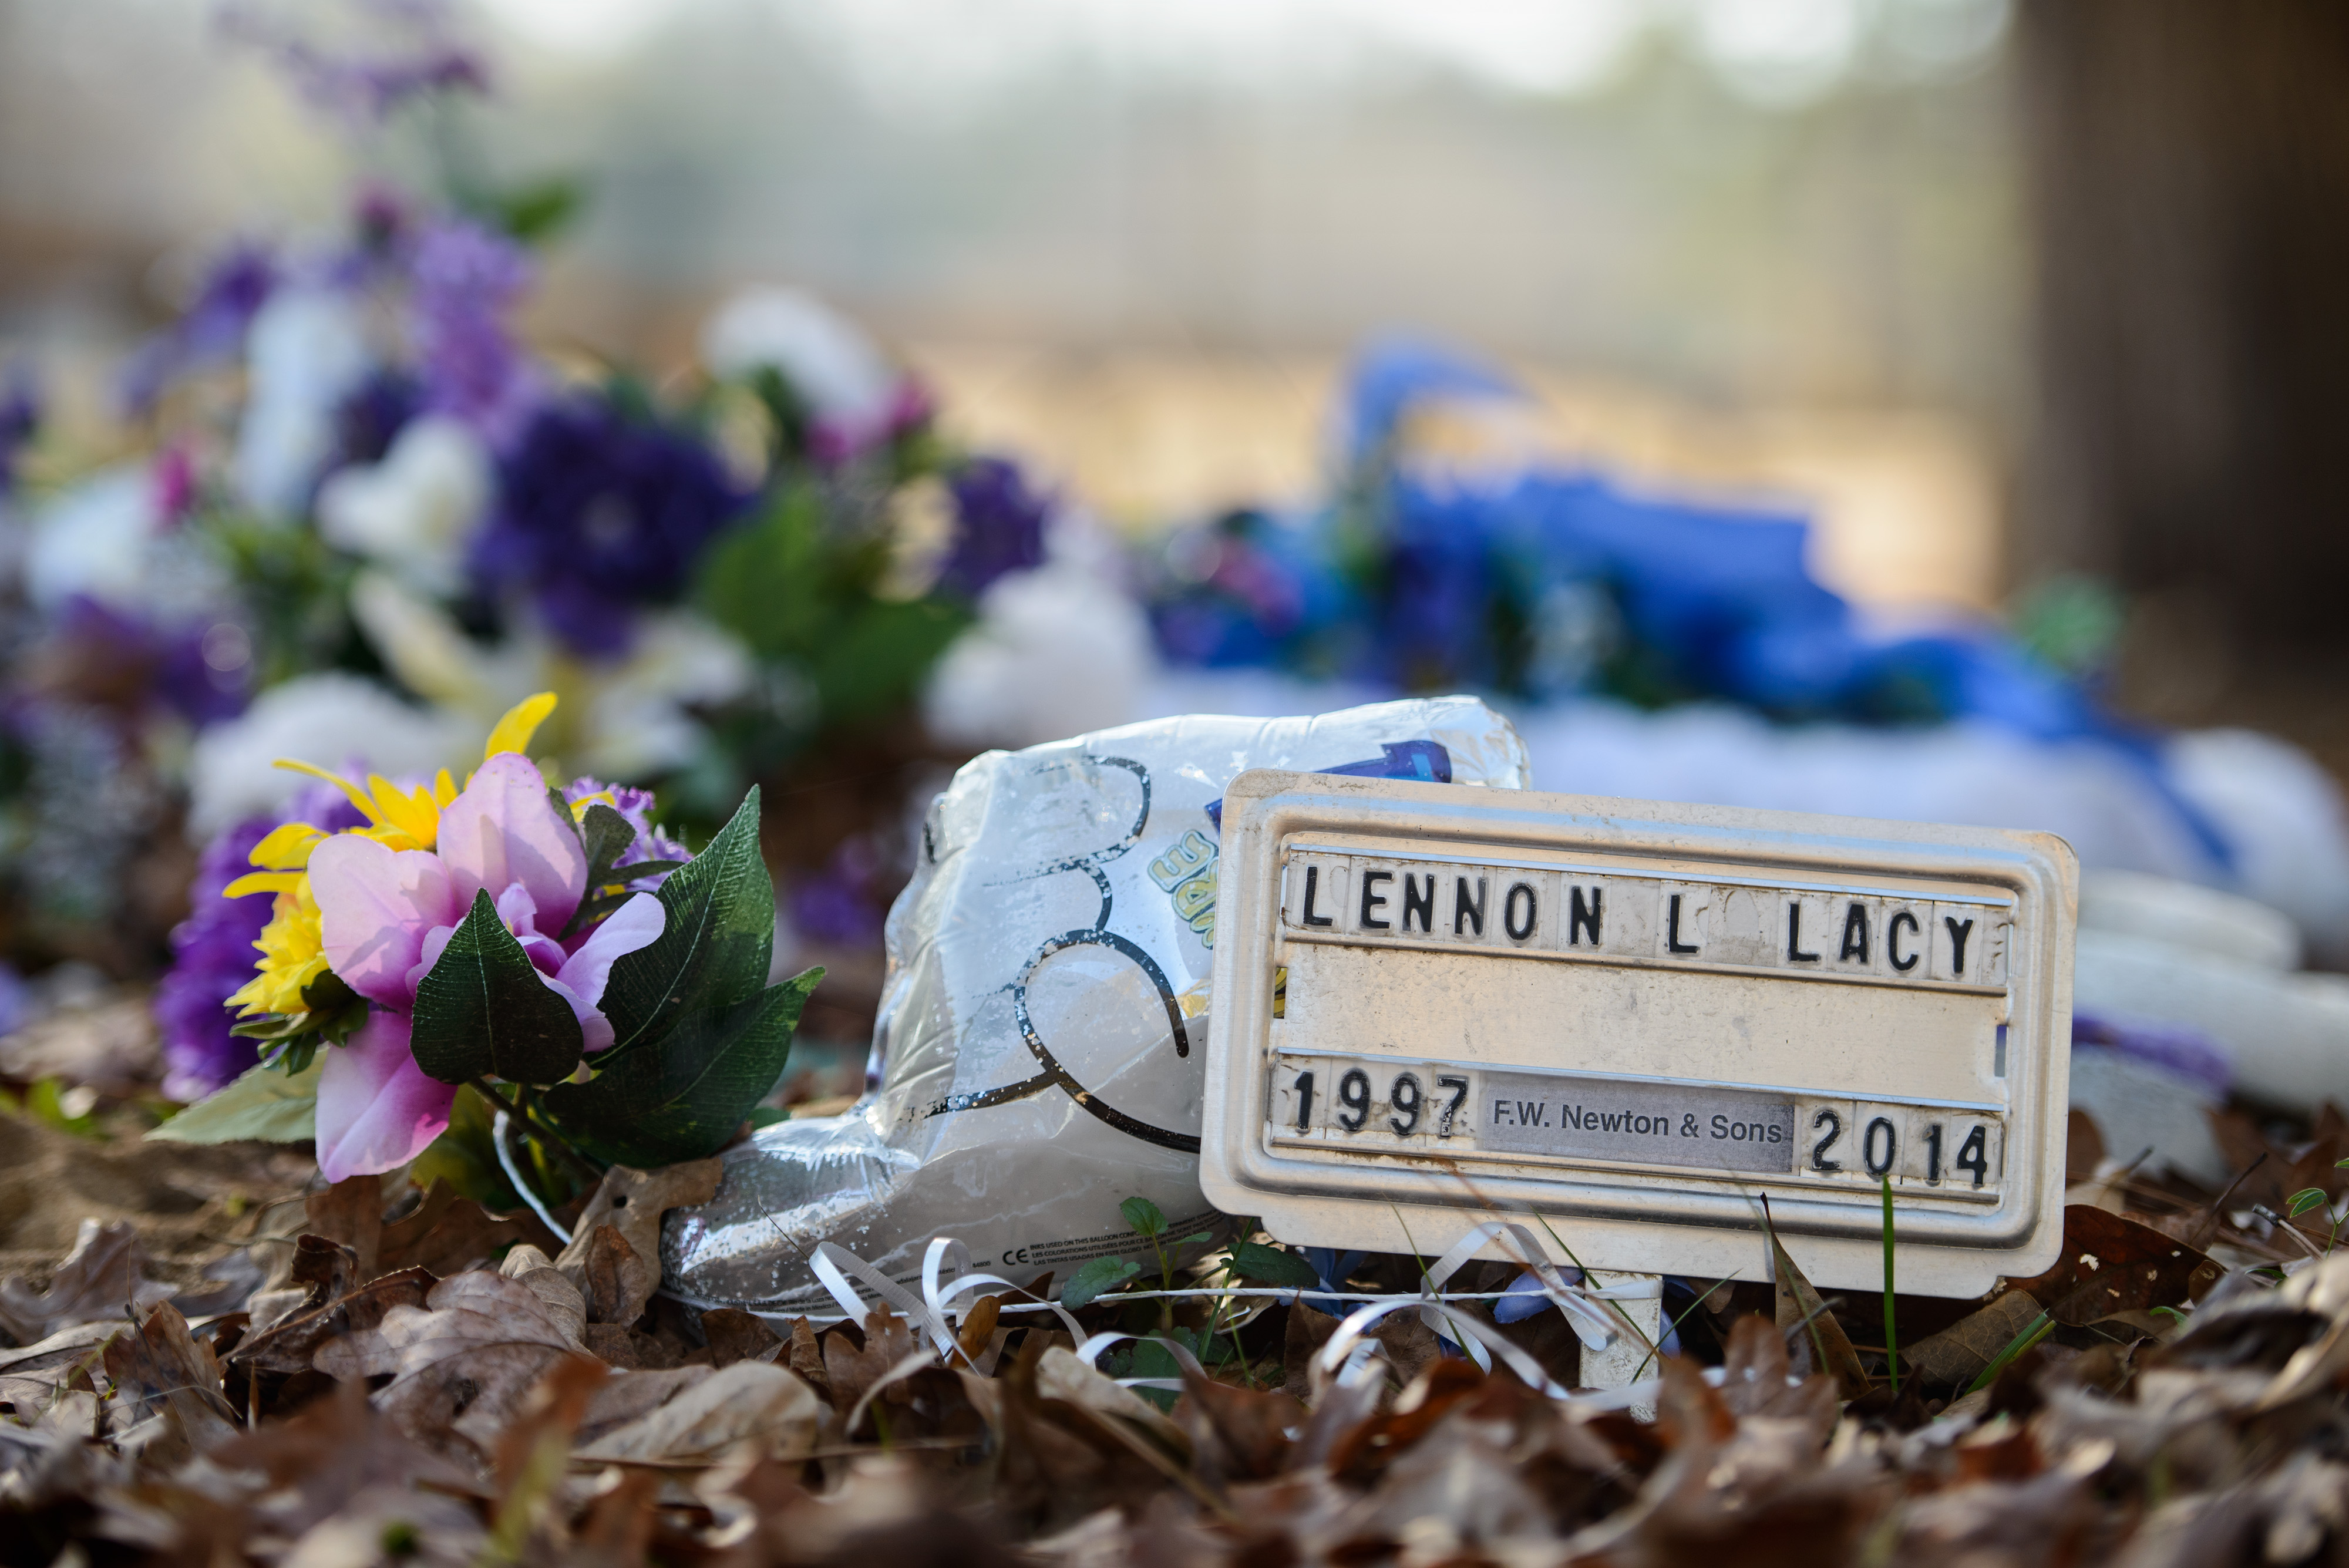 A small metal placard marks the grave of Lennon Lacy Sunday, Dec. 14, 2014, at Old Shaw-Lacy Field Cemetery in Bladenboro, N.C. Lennon Lacy, a 17-year-old black teenager, was found dead on Aug. 29, 2014, hanging from a swing set in a trailer park in the rural community. Police ruled the death a suicide, but his family believe it was murder.